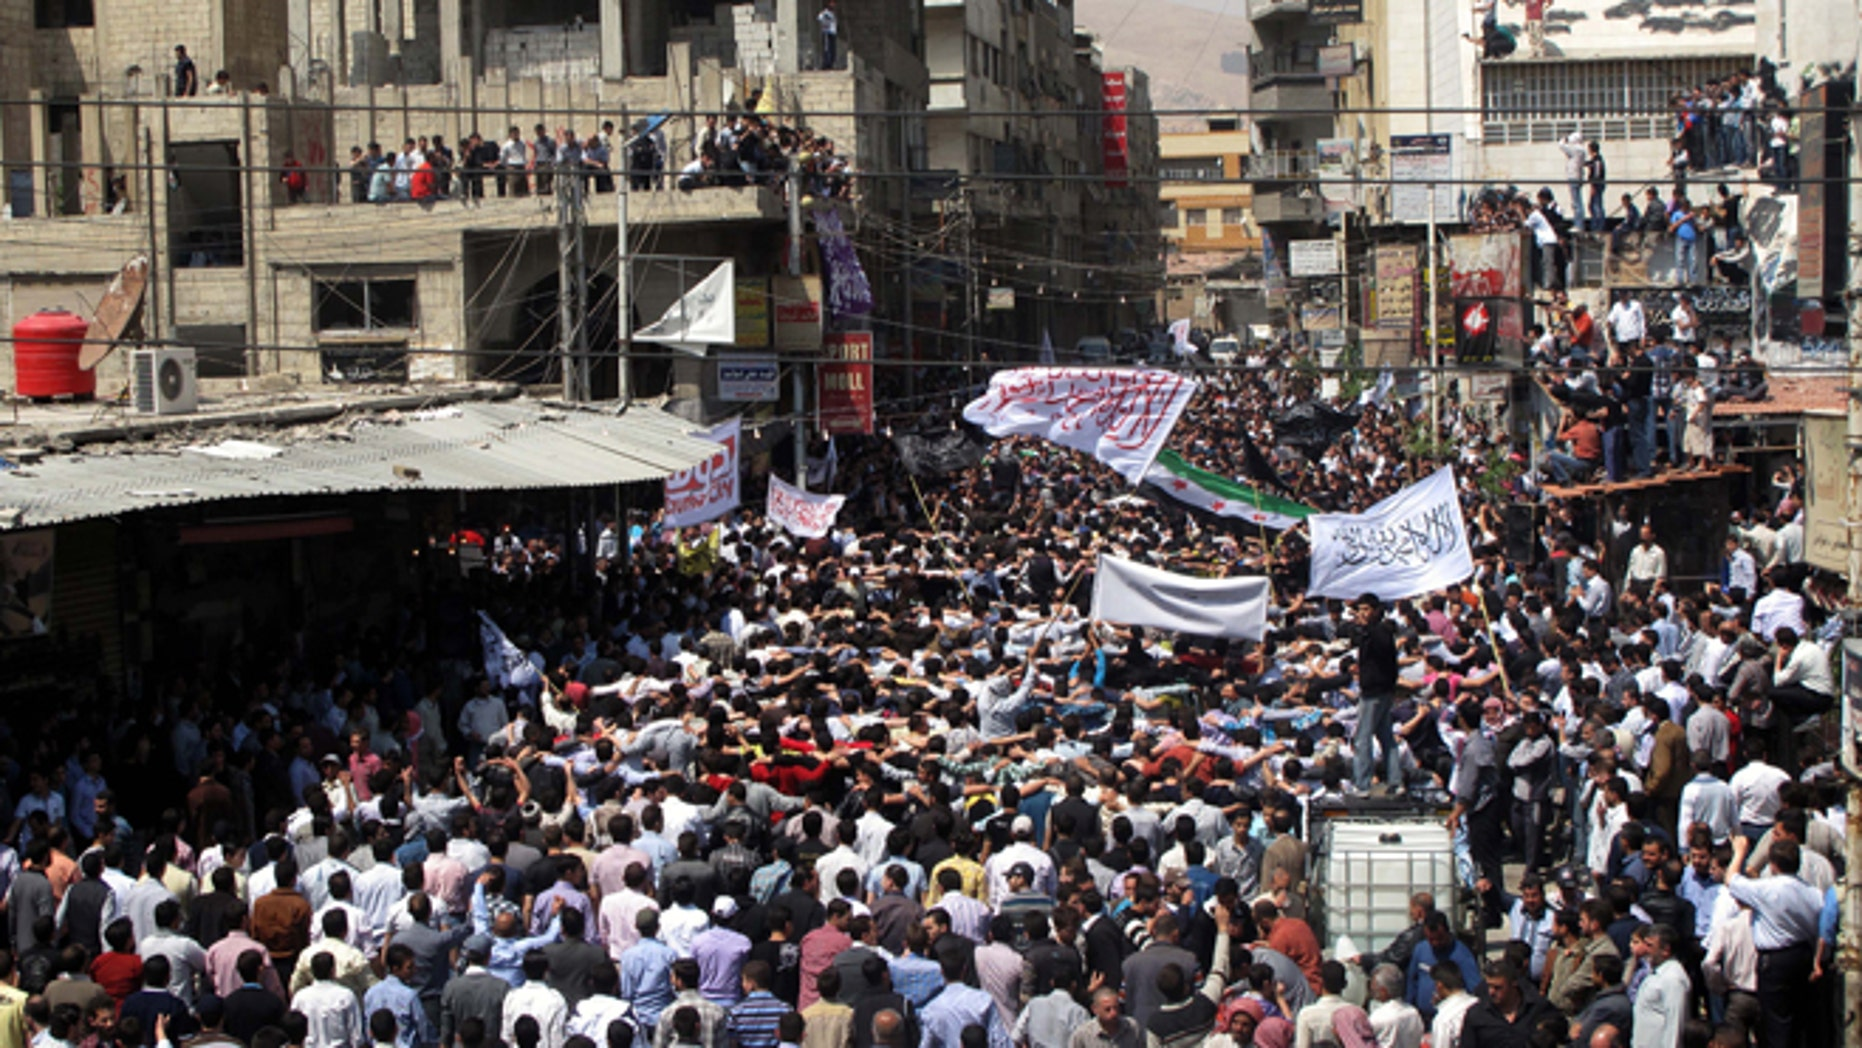 April 20, 2012: Syrians wave Islamic and revolutionary flags at a large protest in Douma, a suburb of Damascus, Syria.